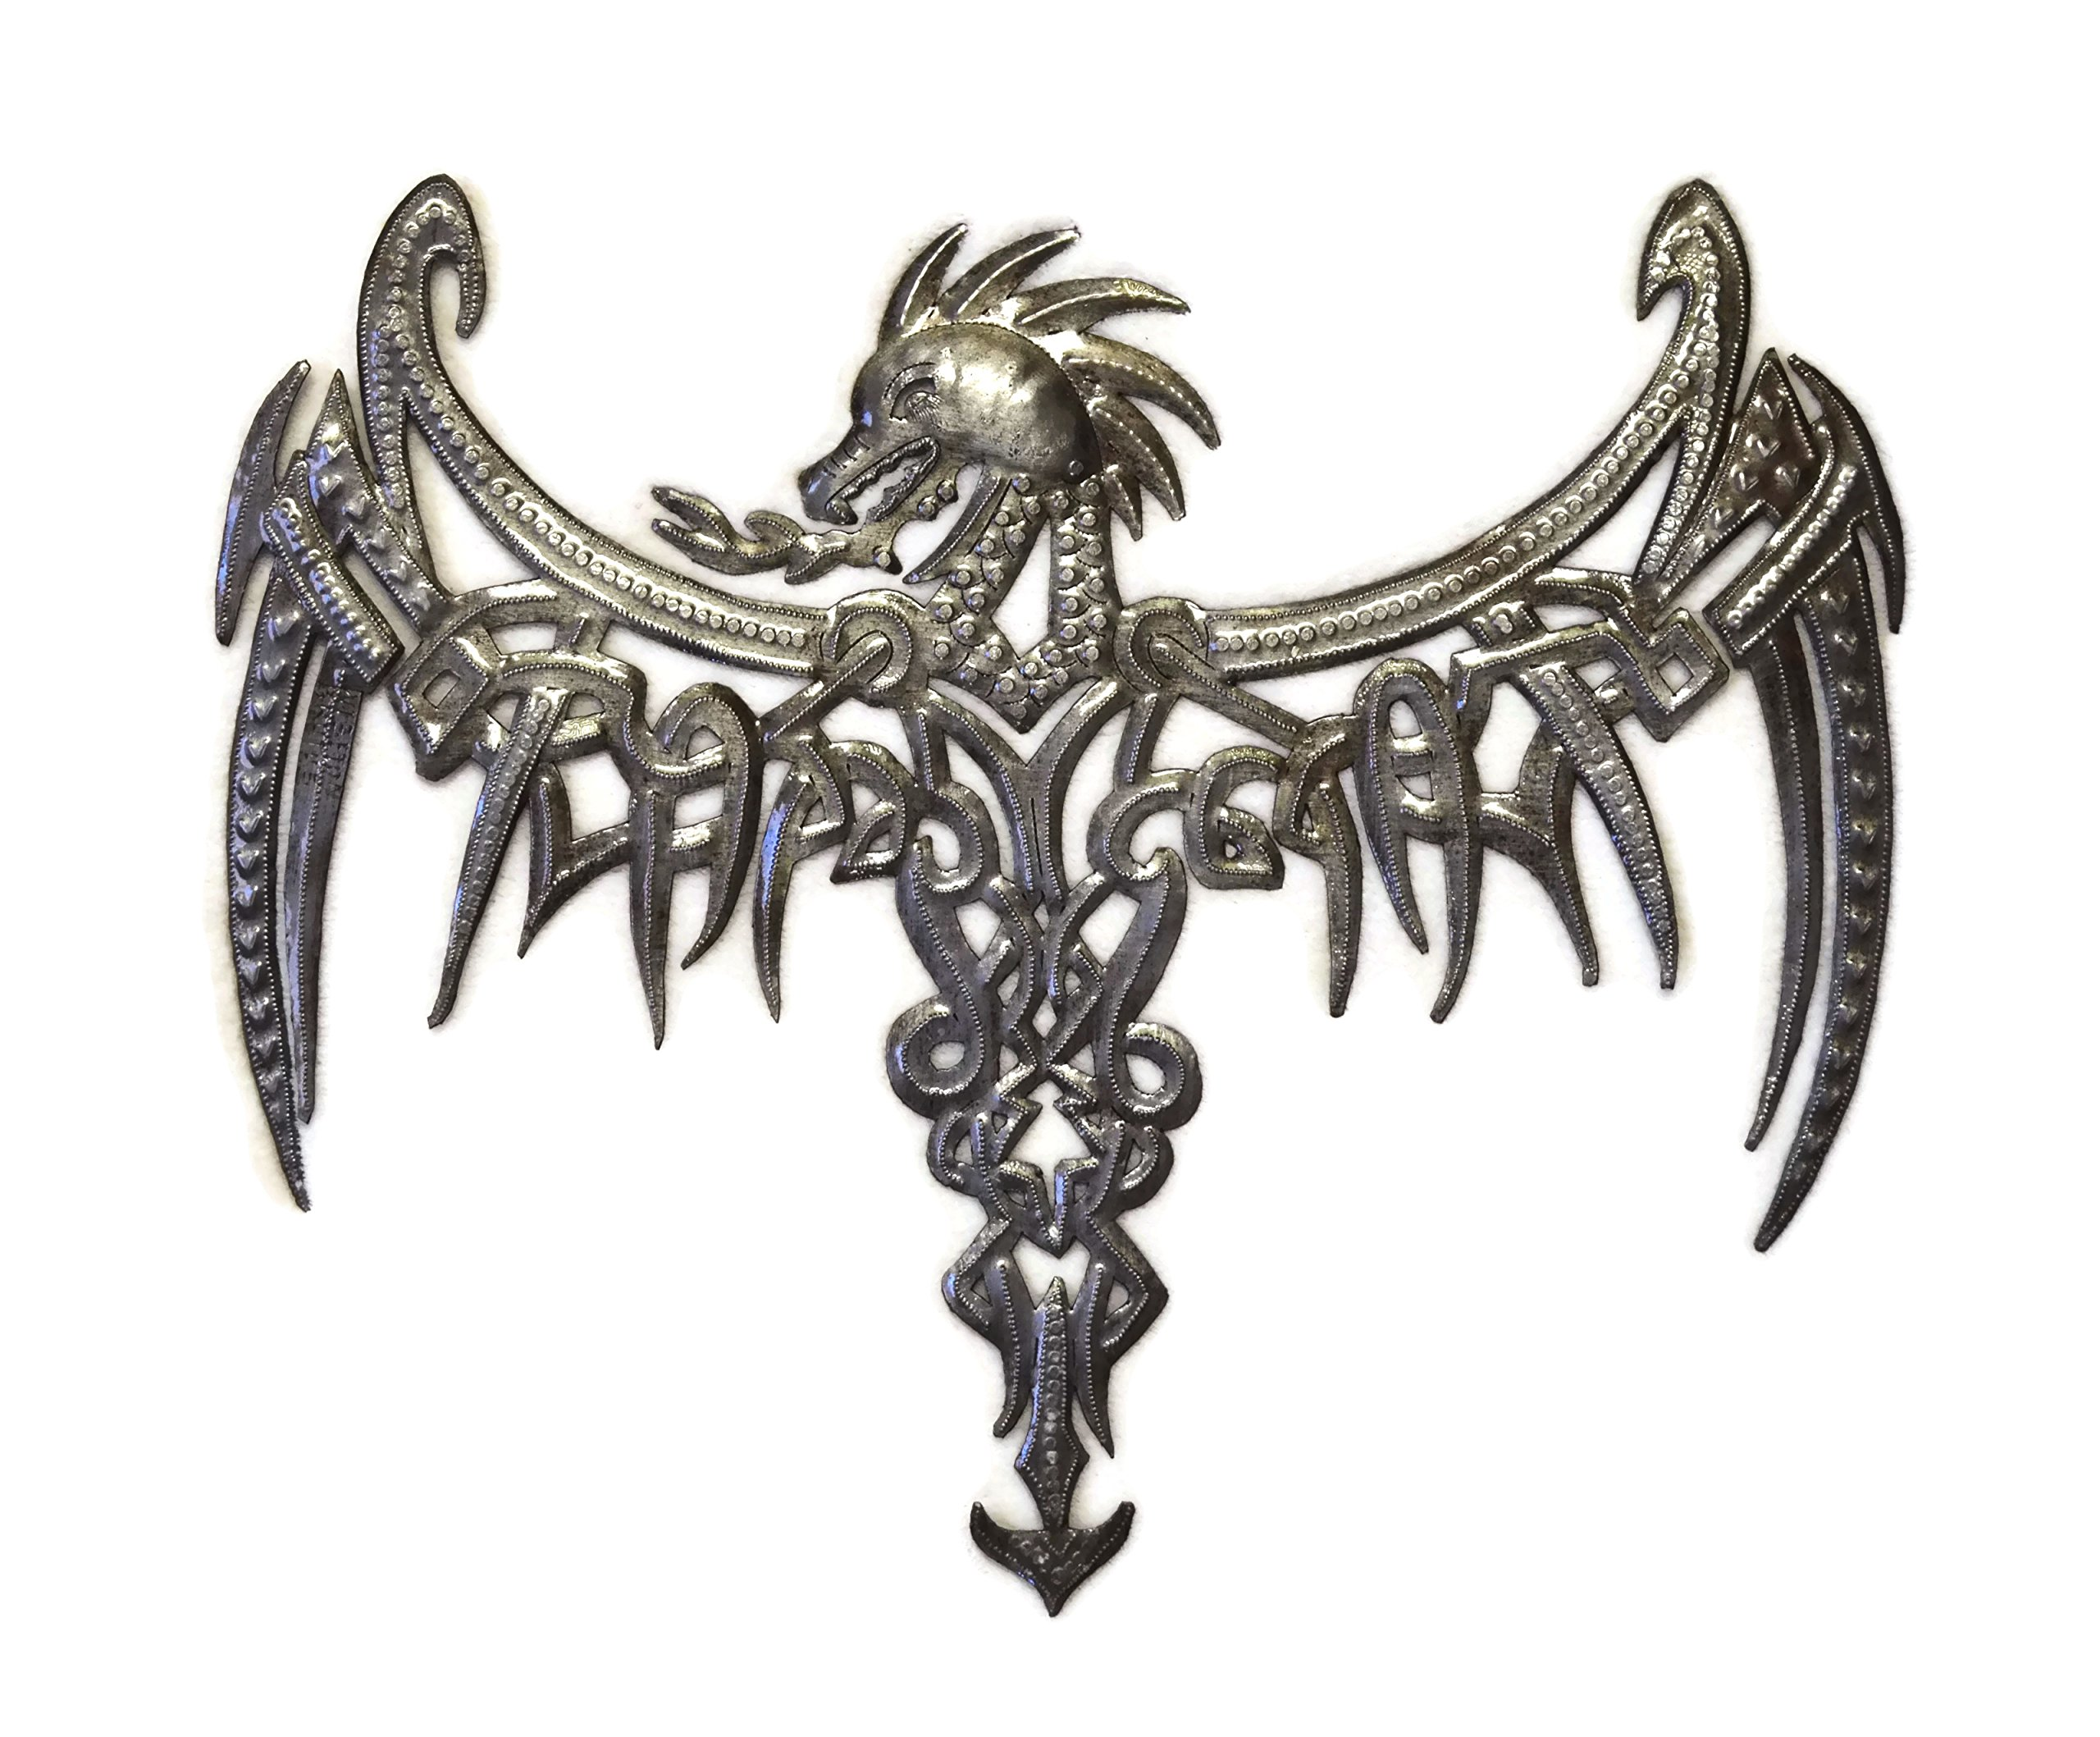 it's cactus - metal art haiti Dragon, Celtic Inspired, Gothic Wall Plaque Artwork from Haiti,13.75'' x 16.75''